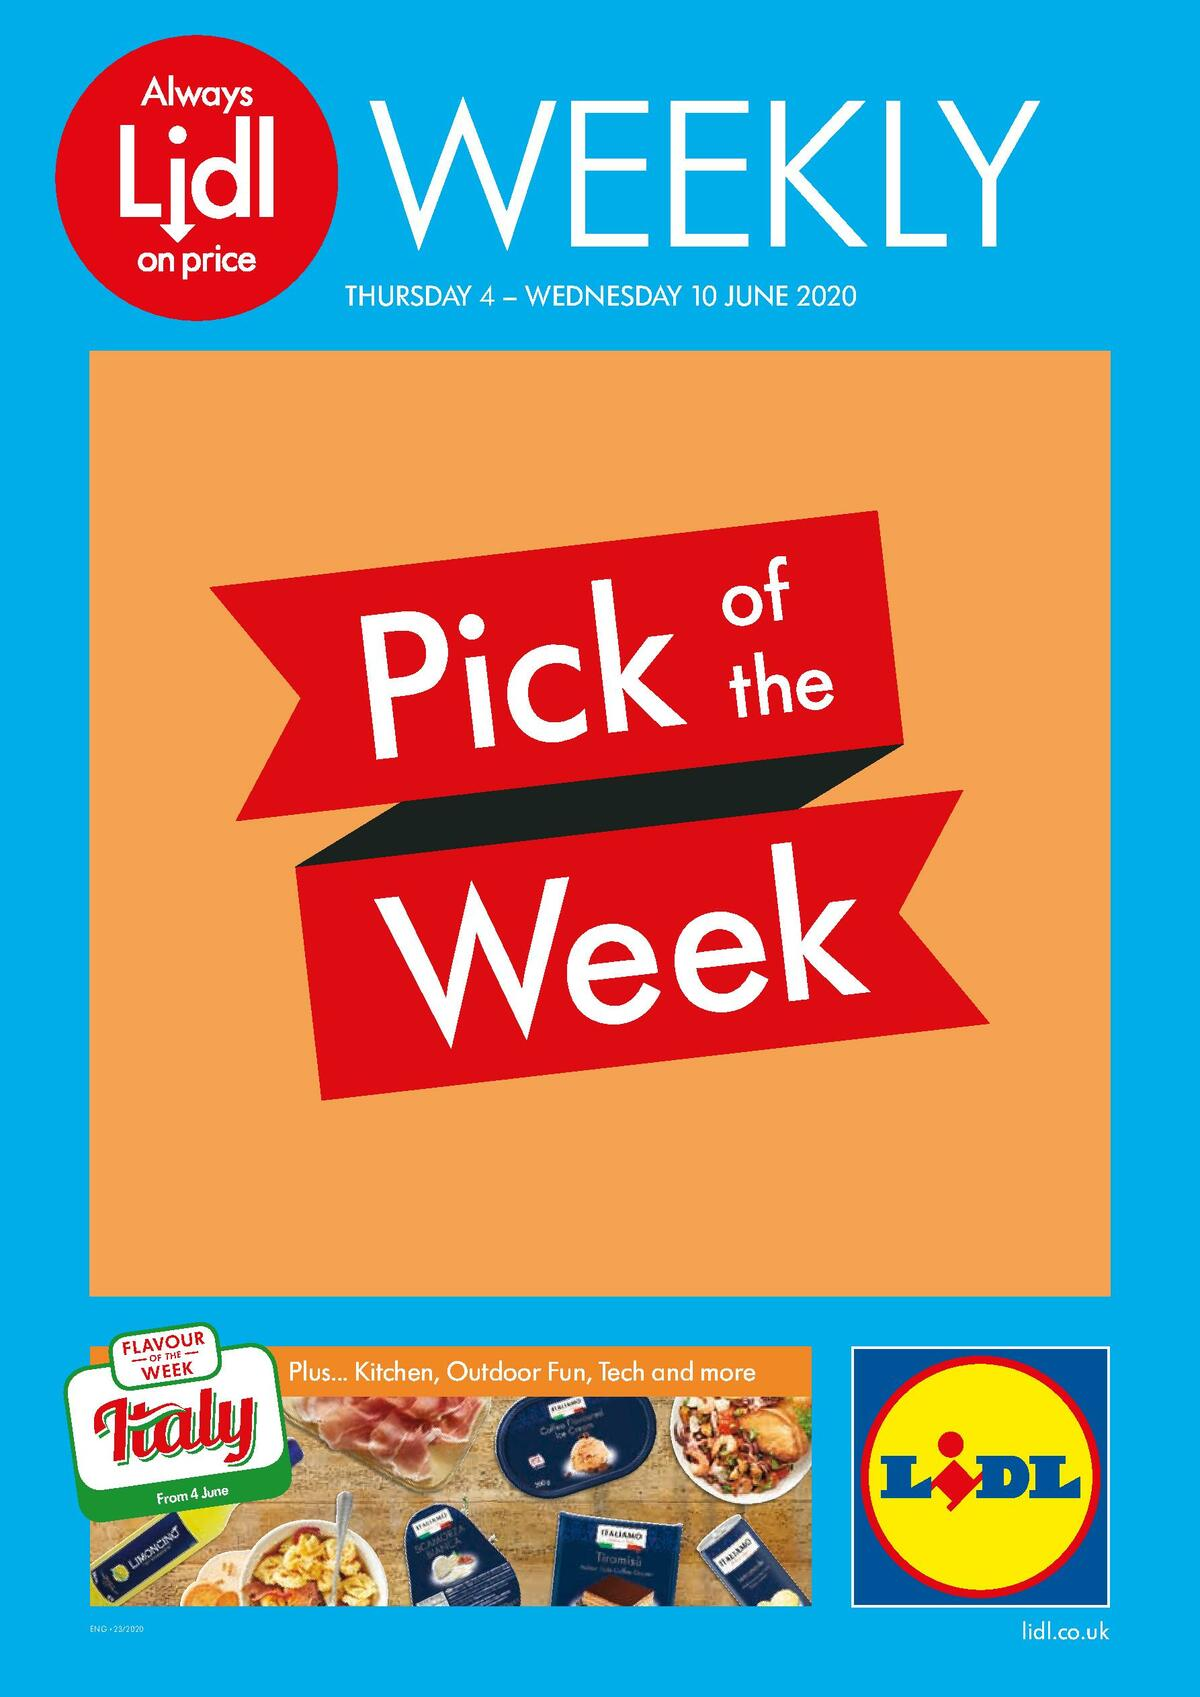 LIDL Offers from June 4